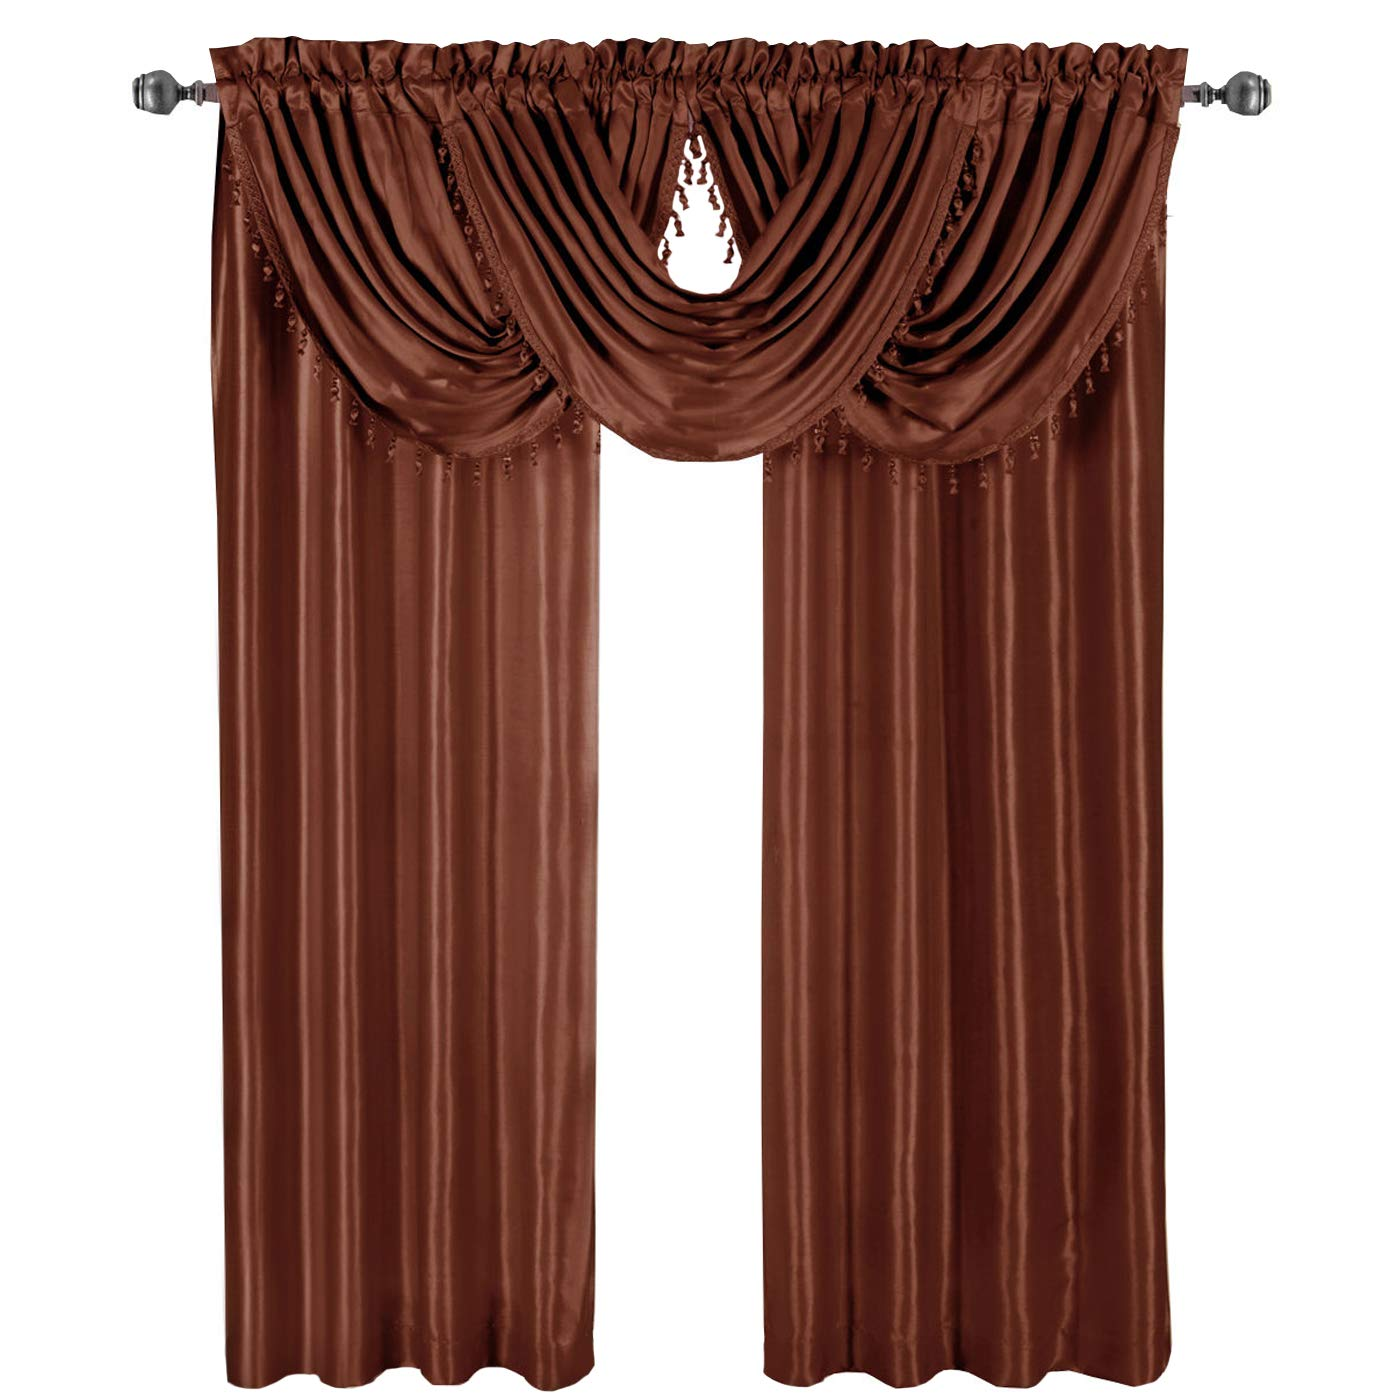 Luxury Soho Rust Waterfall Valance, Solid Pattern, 57x37 inches, by Royal Hotel